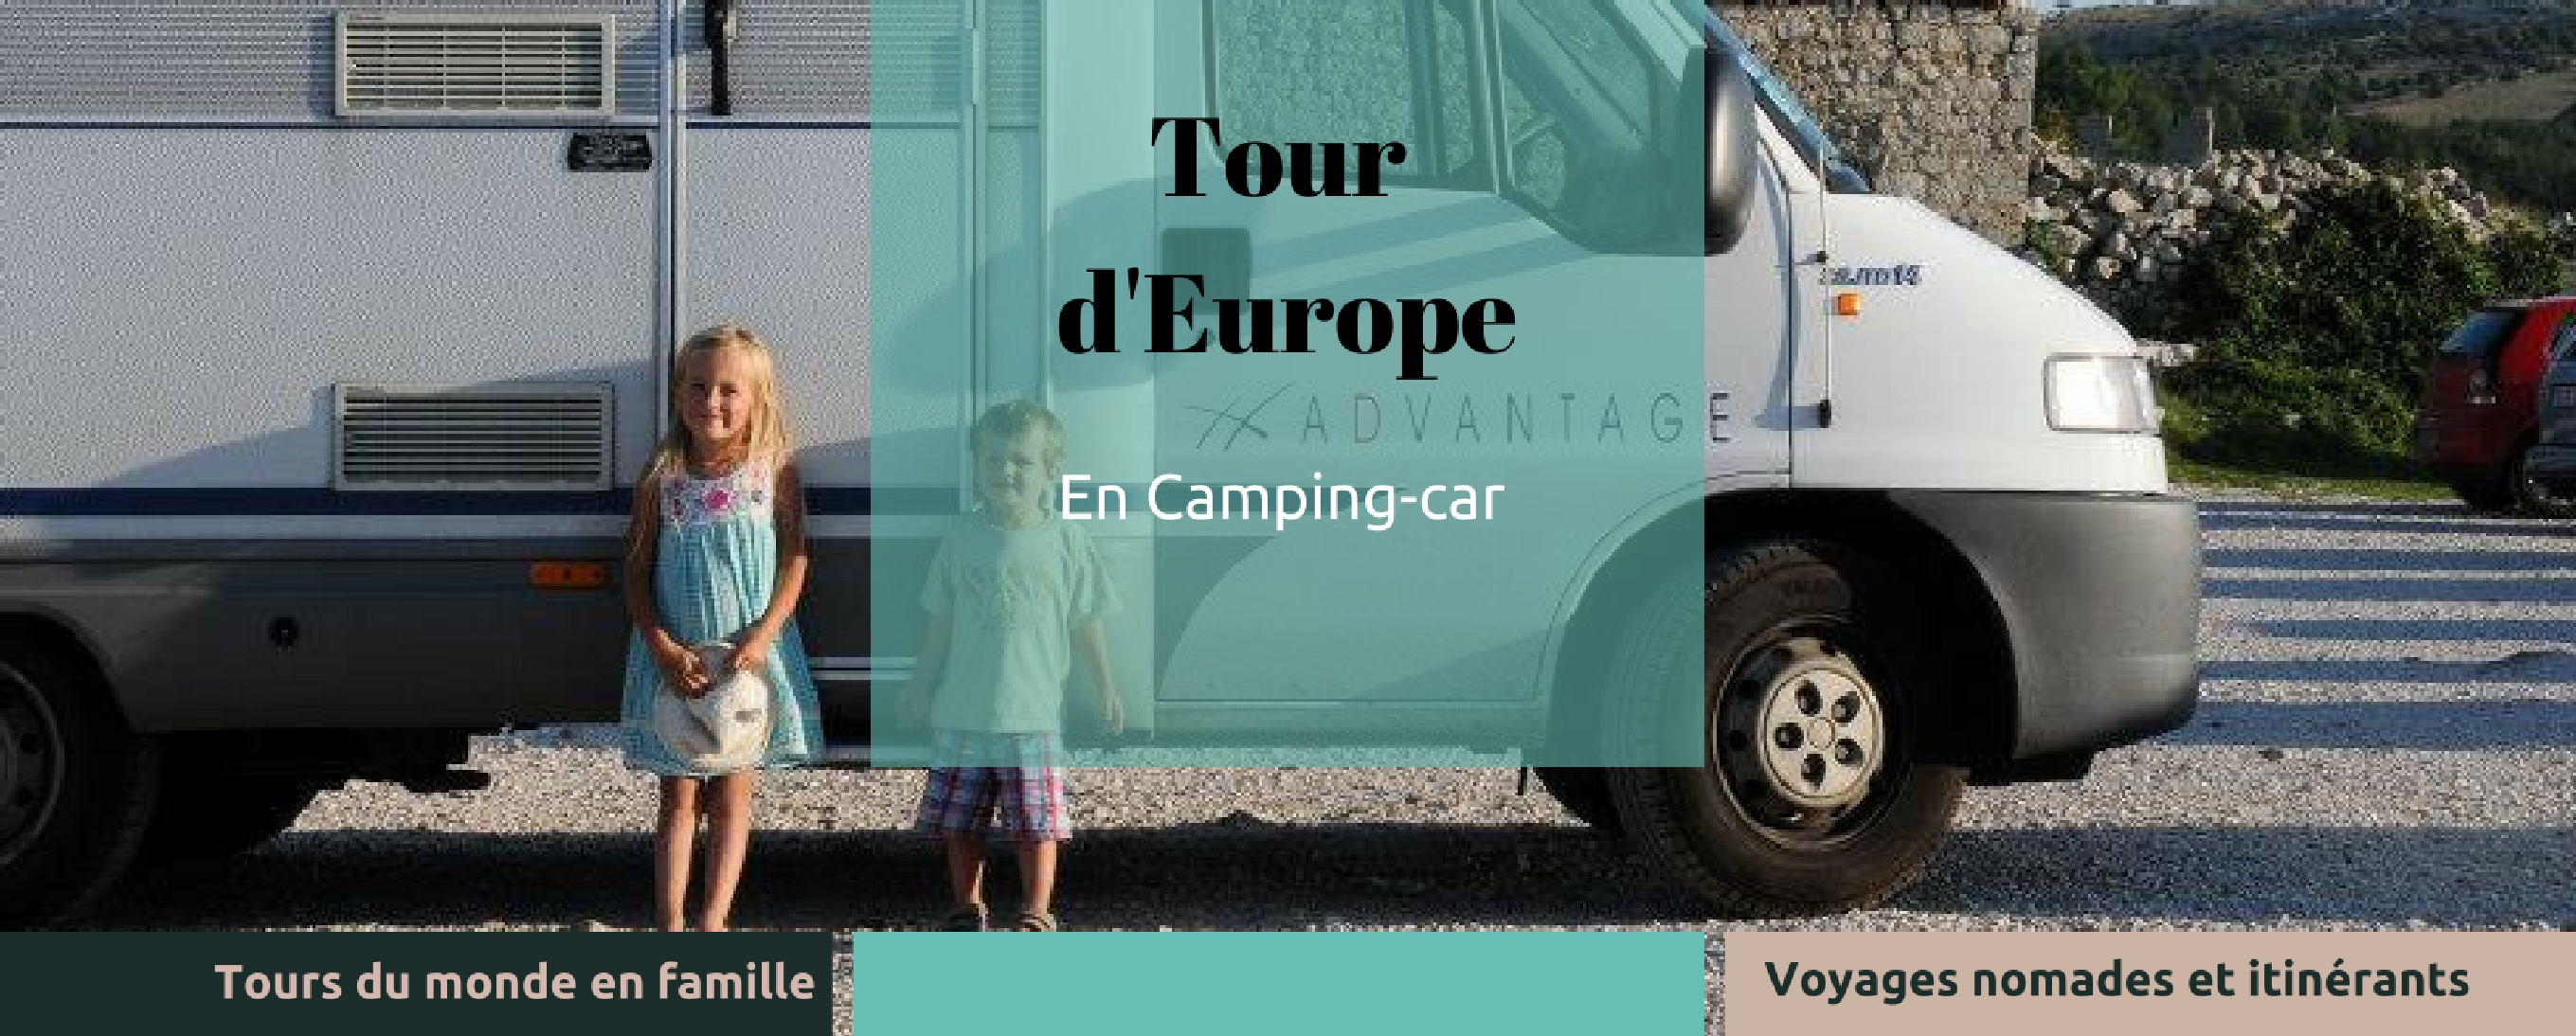 Idee voyage camping car france